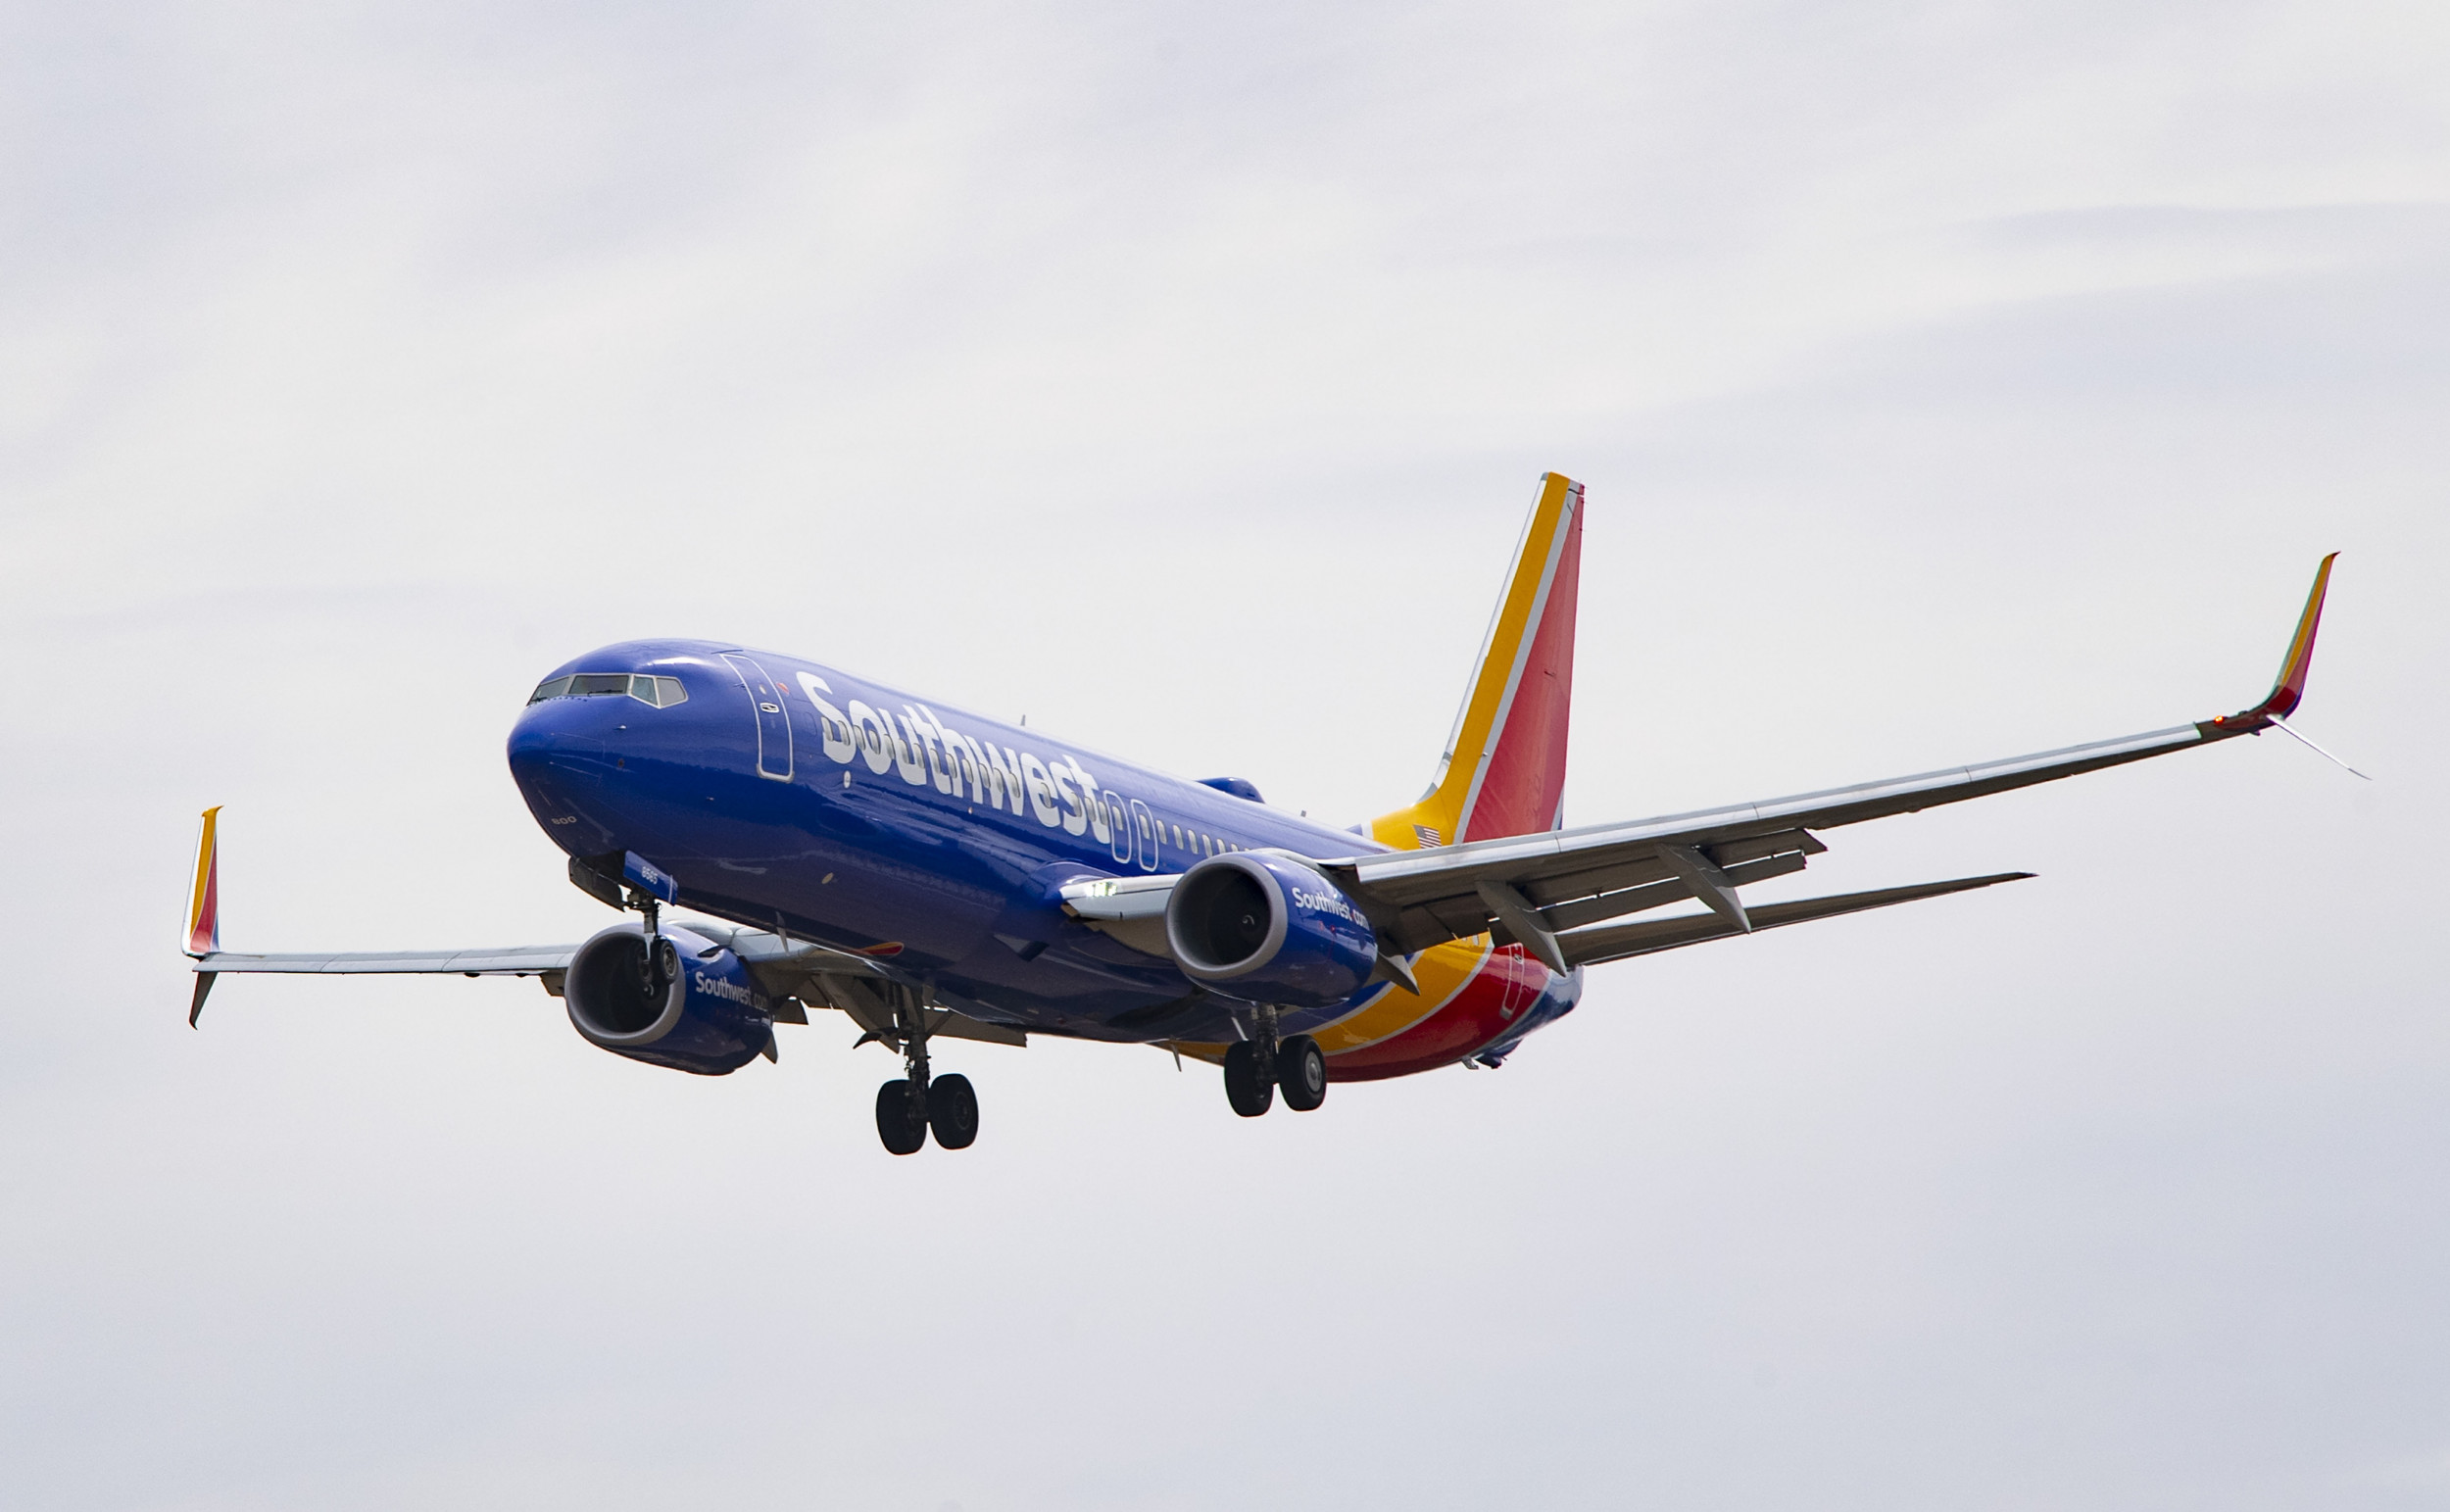 Southwest Airlines Boeing 737 Strikes And Kills Person On Austin Runway During Landing